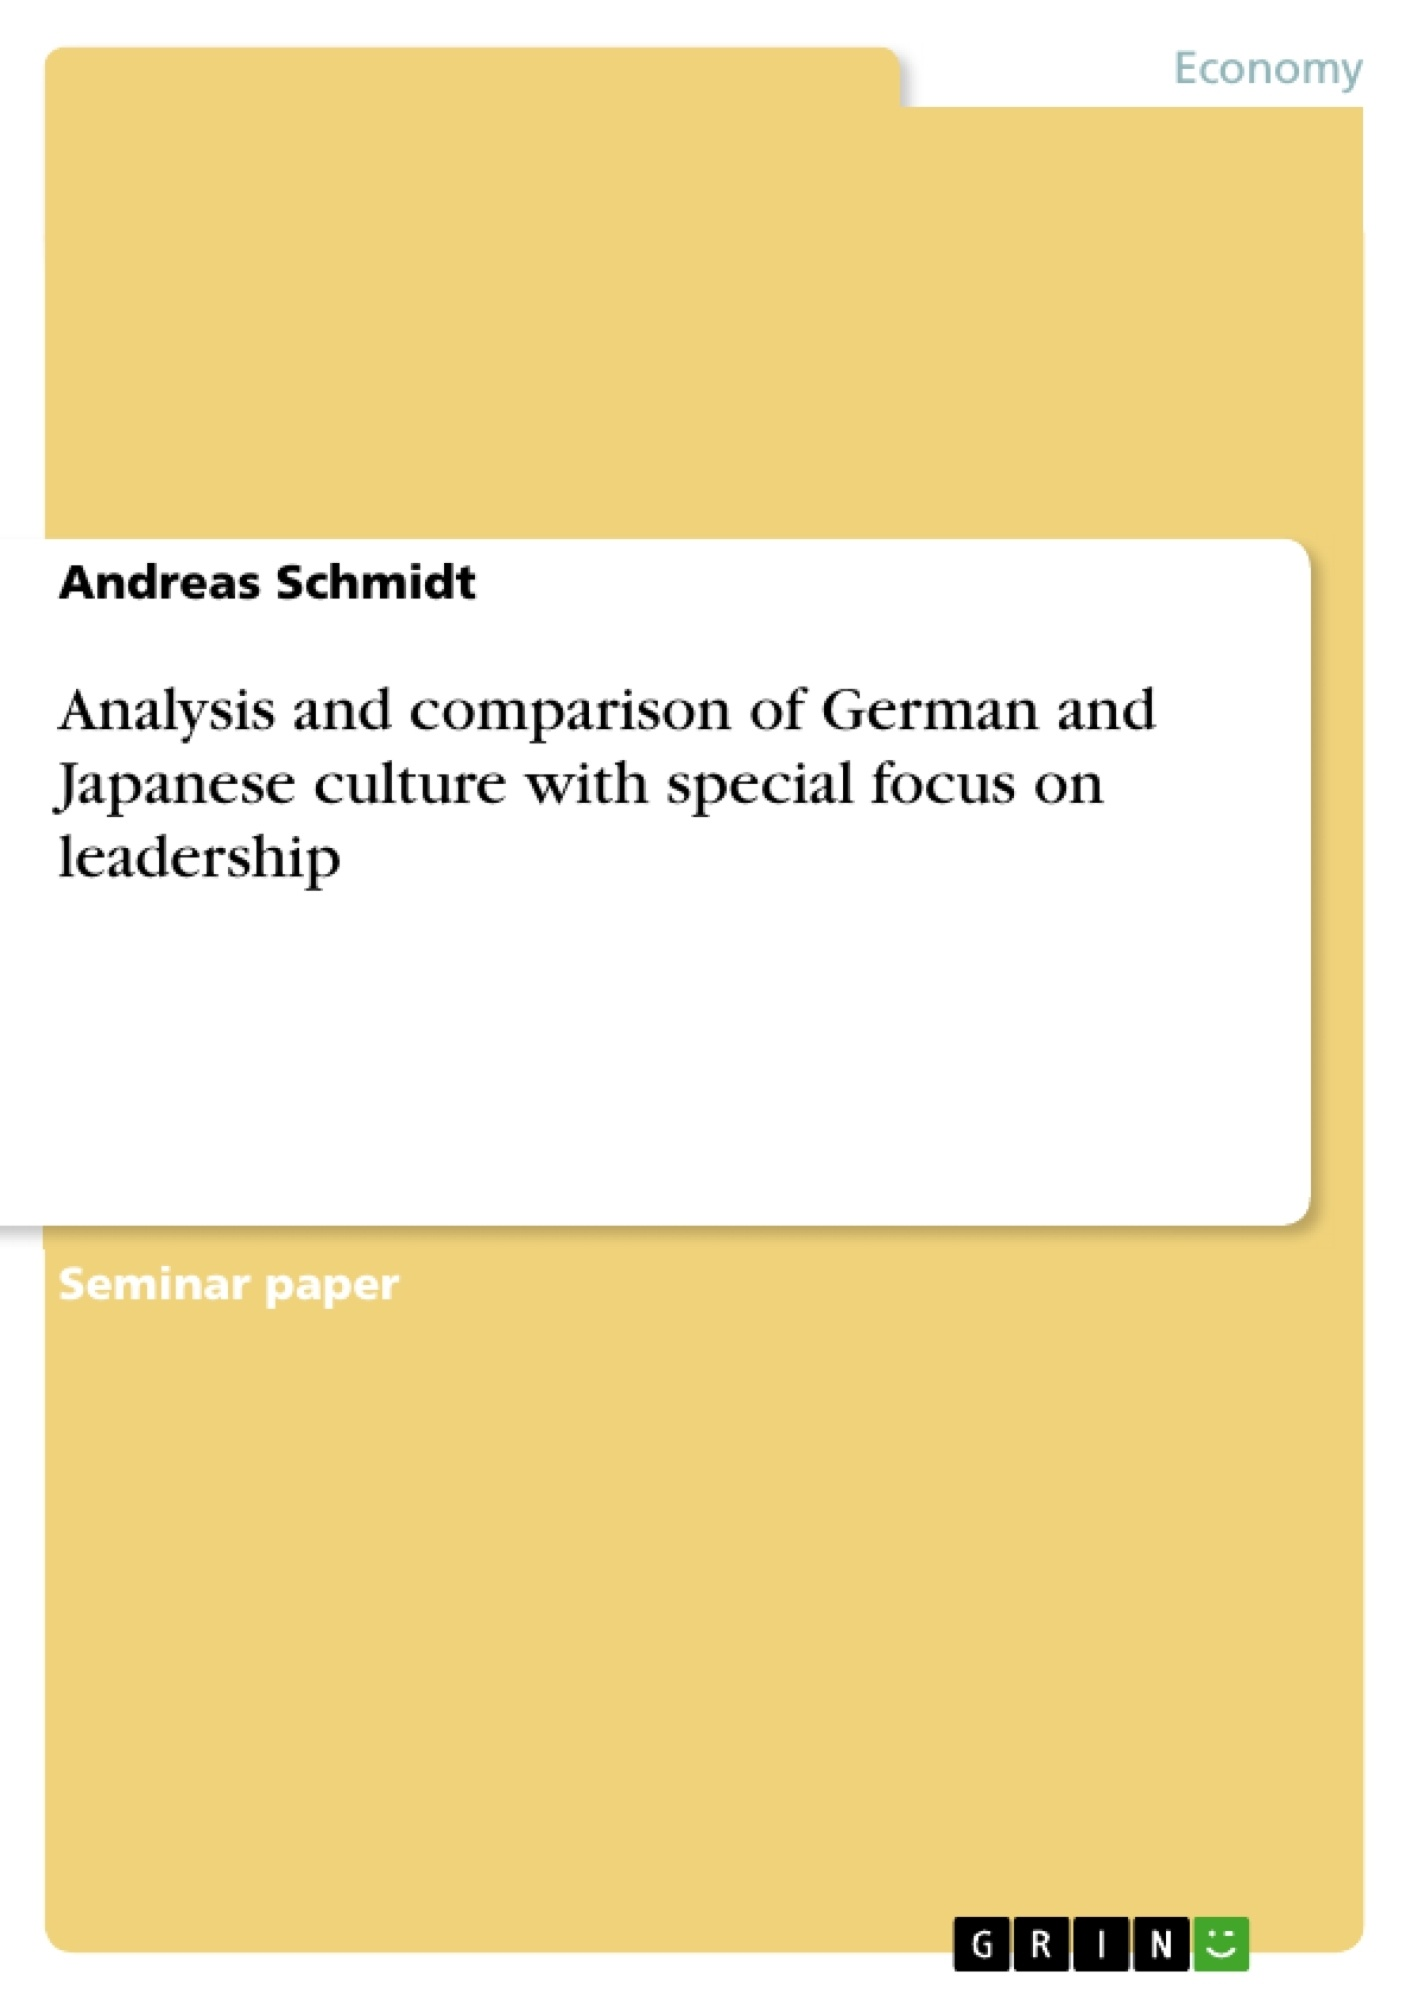 Title: Analysis and comparison of German and Japanese culture with special focus on leadership